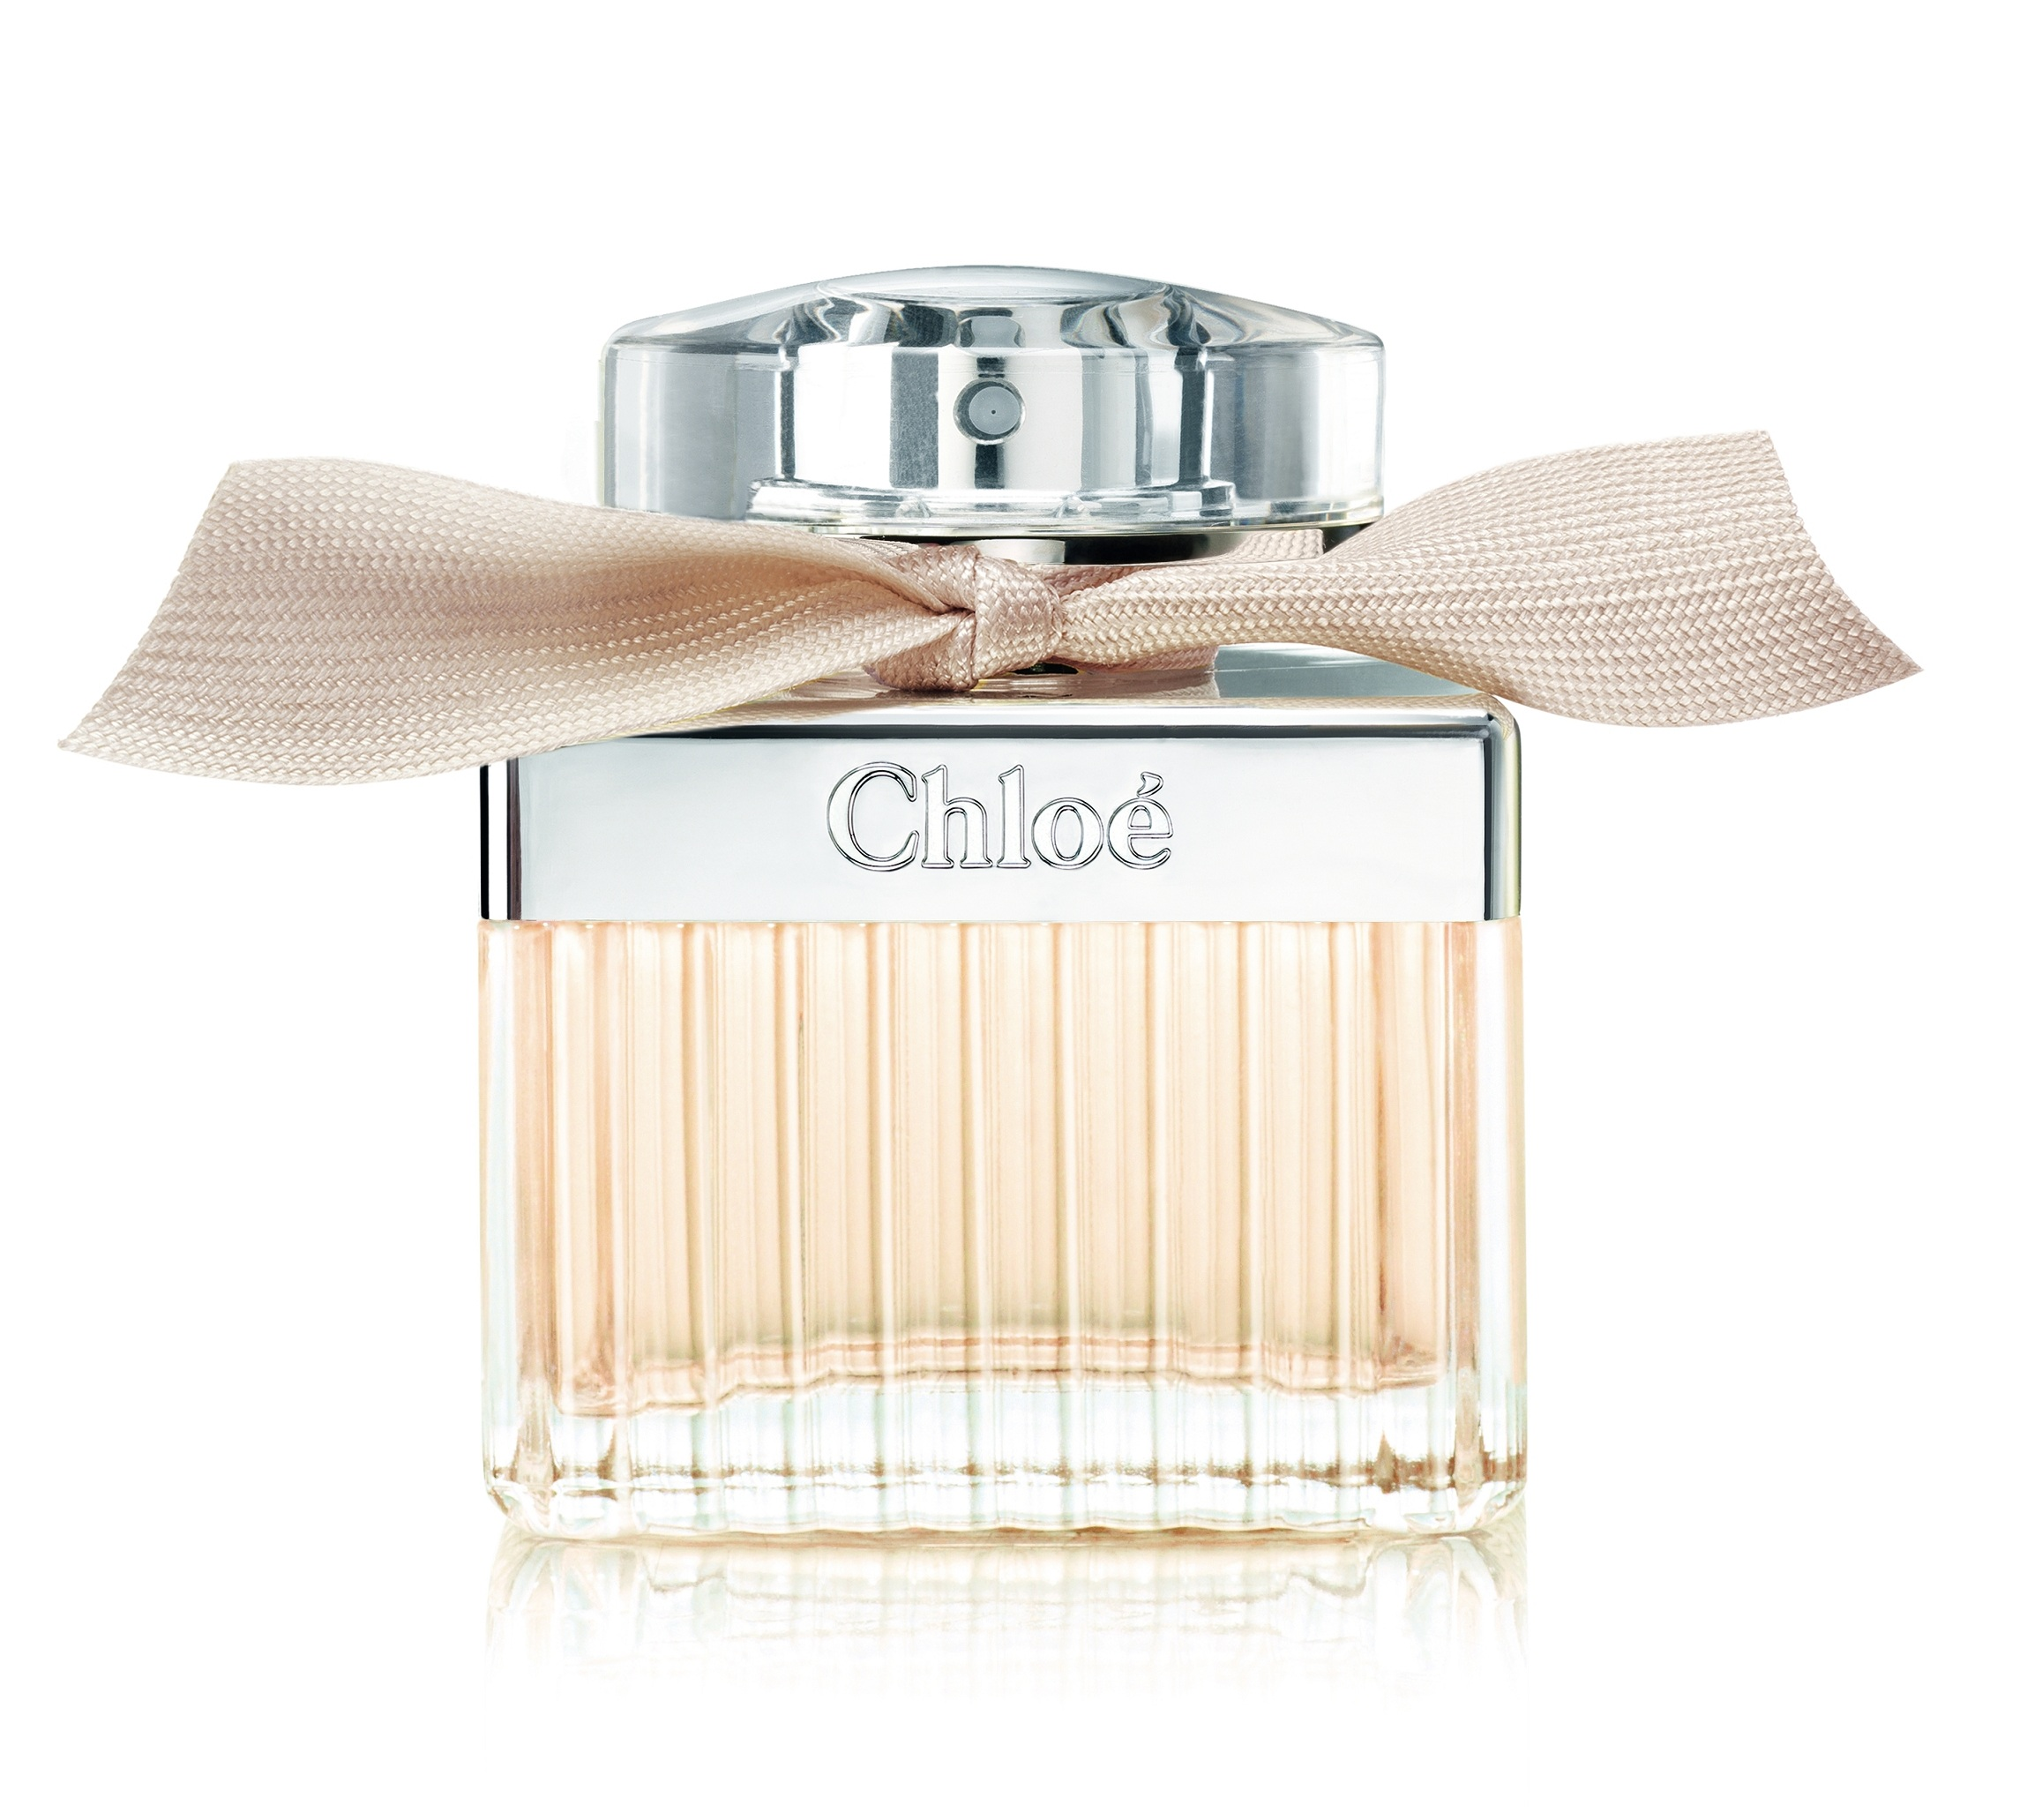 Perfumes Chloe A Sense Of Chloé Chloés Signature Scent The Beauty